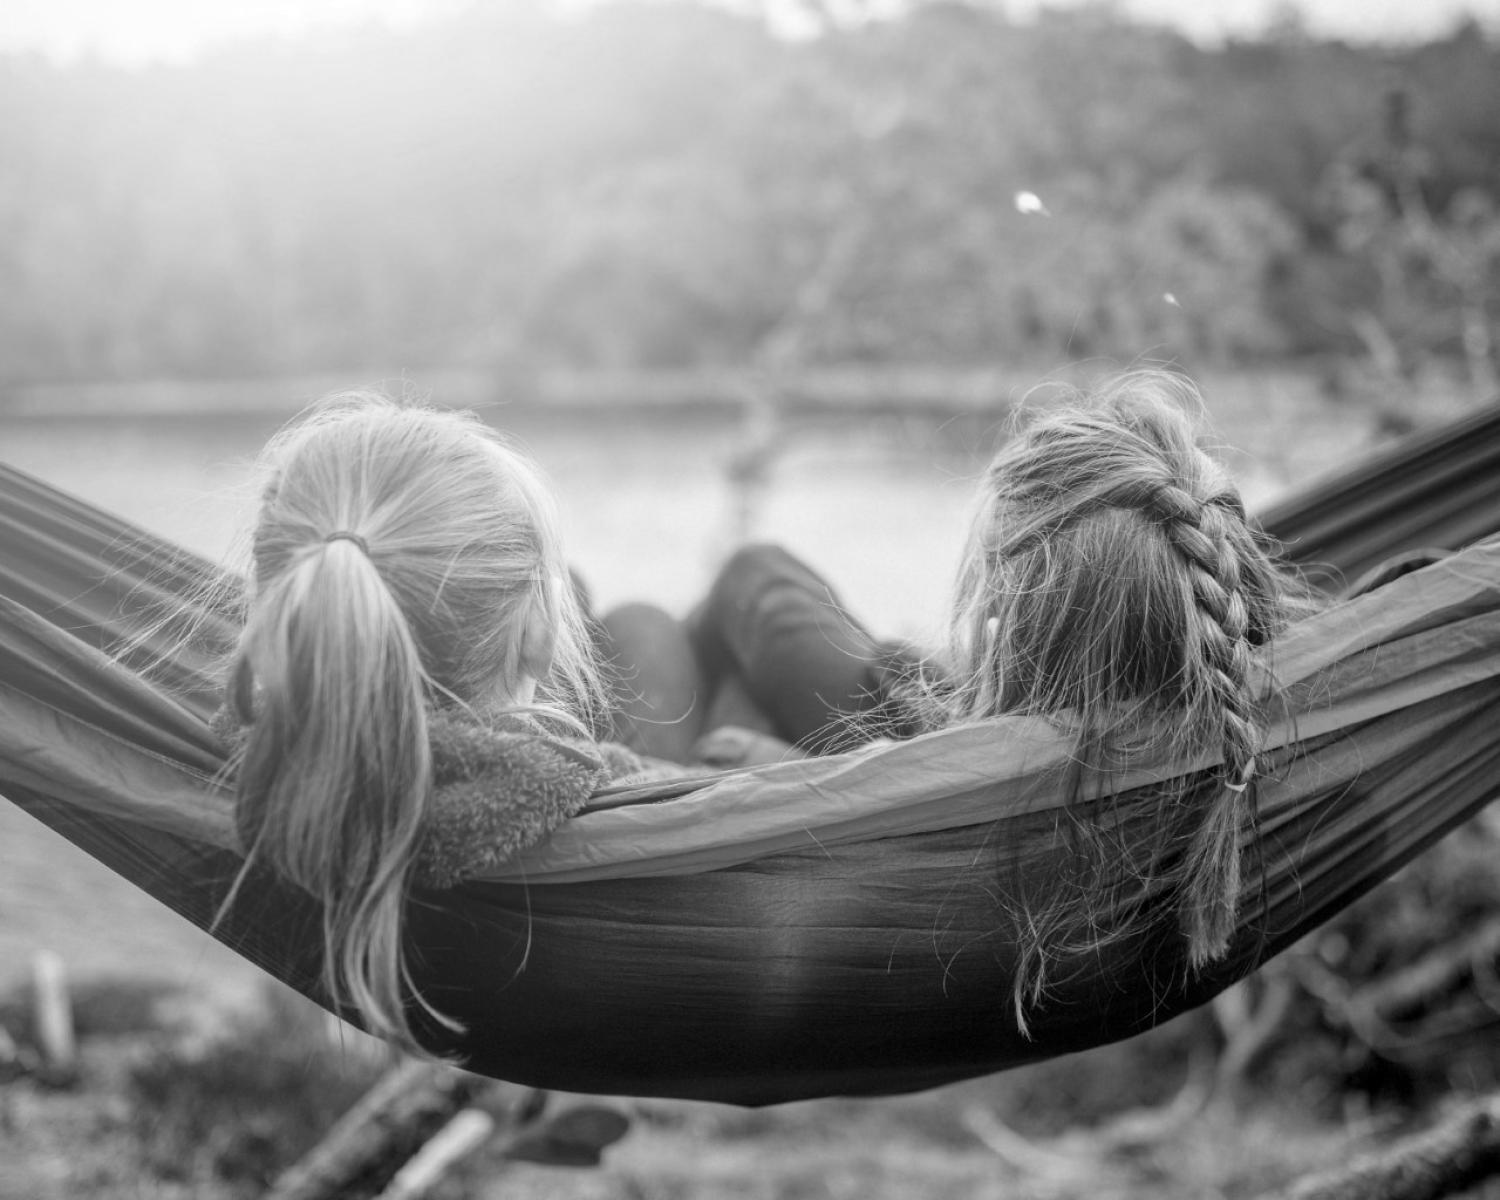 Two young girls in a hammock